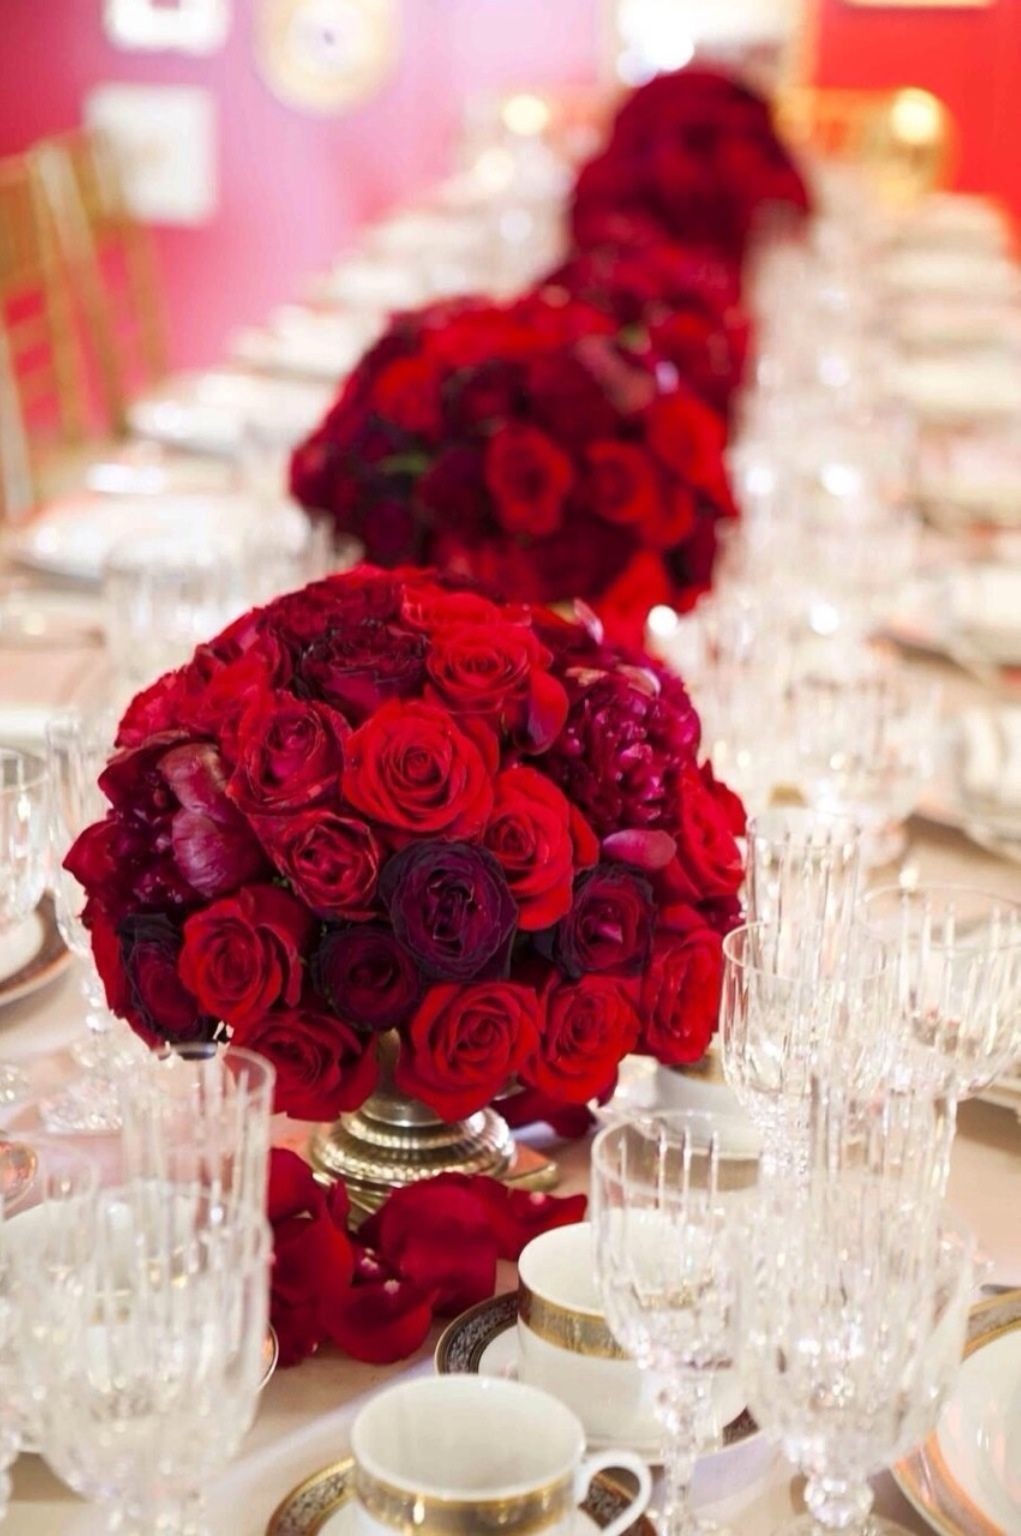 Striking Beautiful Florals And Tablescapes Pinterest White